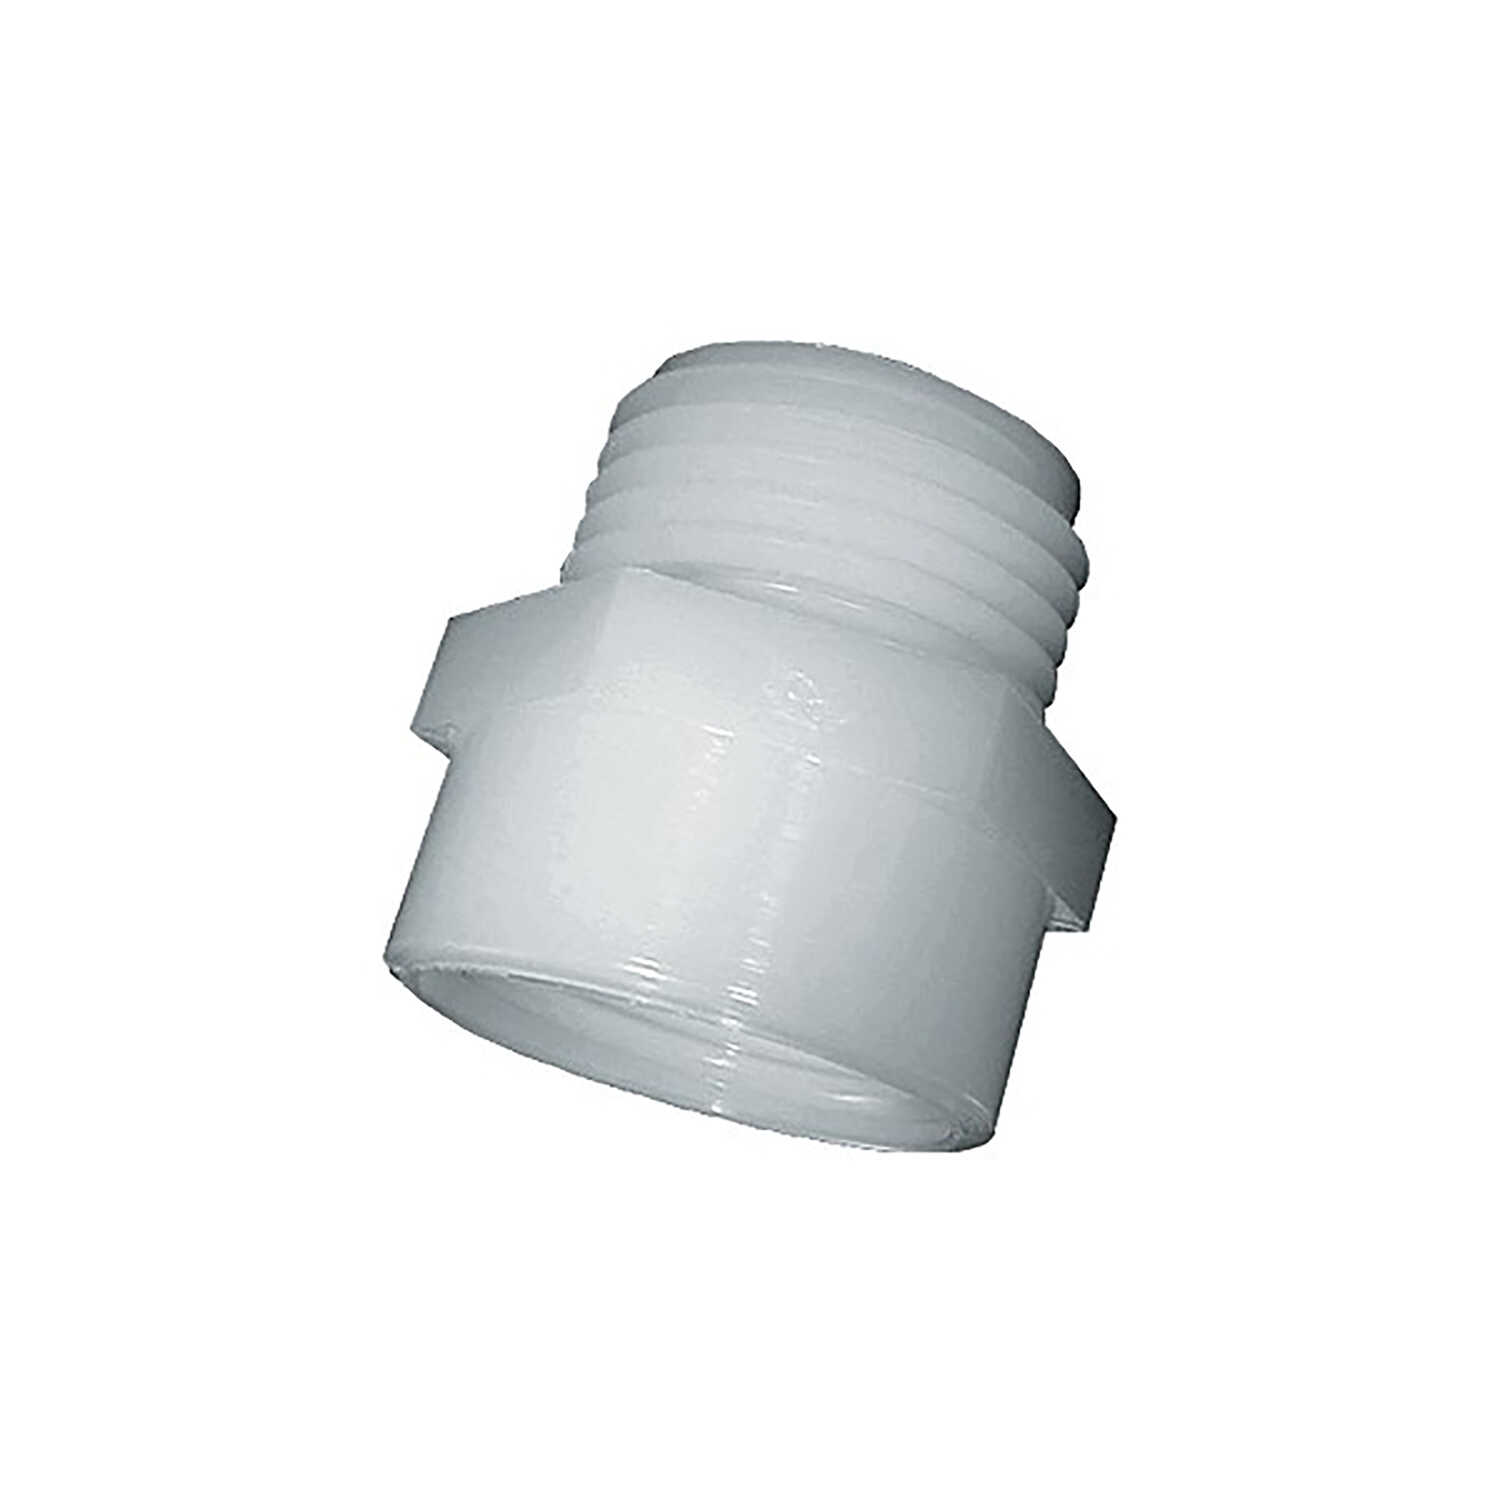 Green Leaf  3/4 in. MGHT   x 3/4 in. Dia. FPT  Hose Adapter